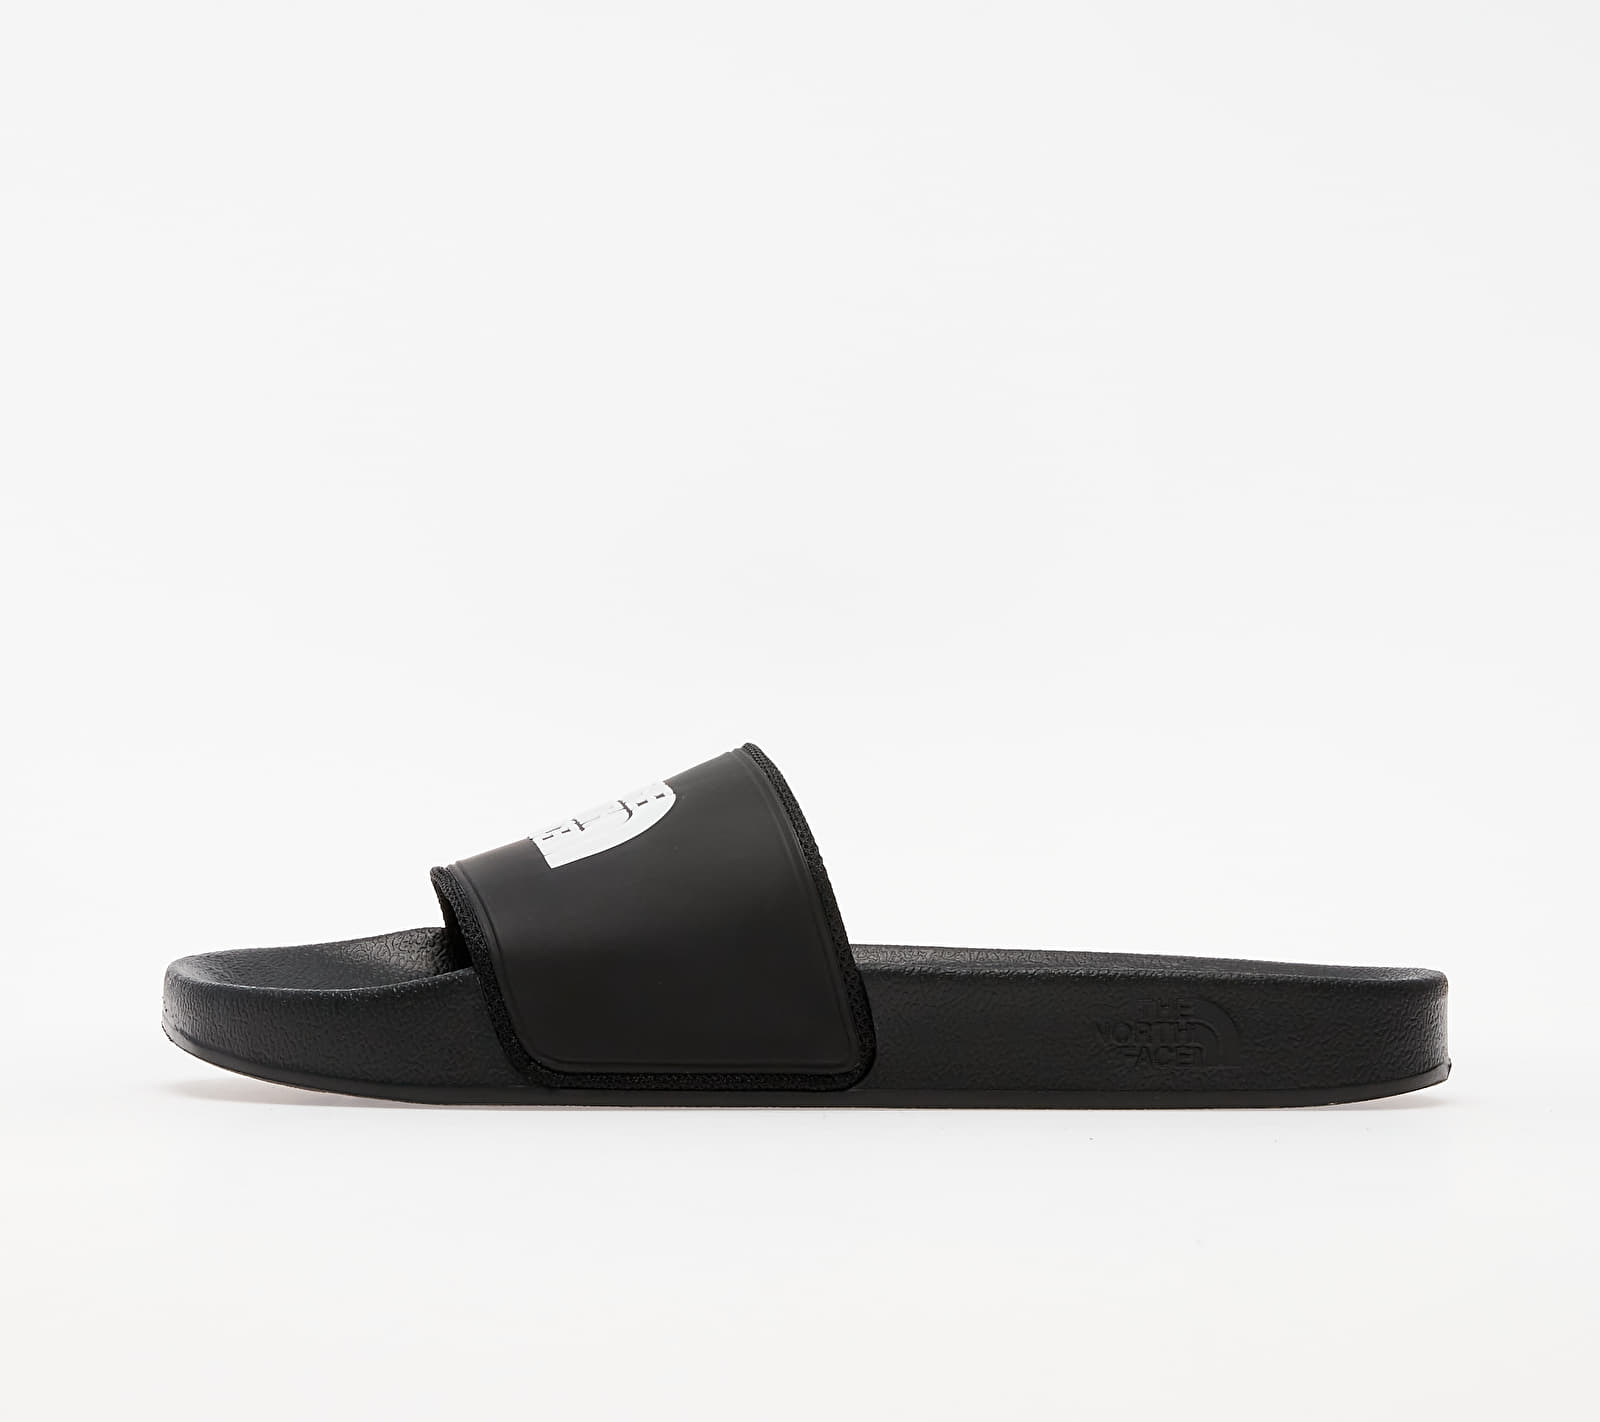 The North Face Base Camp Slide II Tnf Black/ Tnf White NF0A3FWOKY4-100